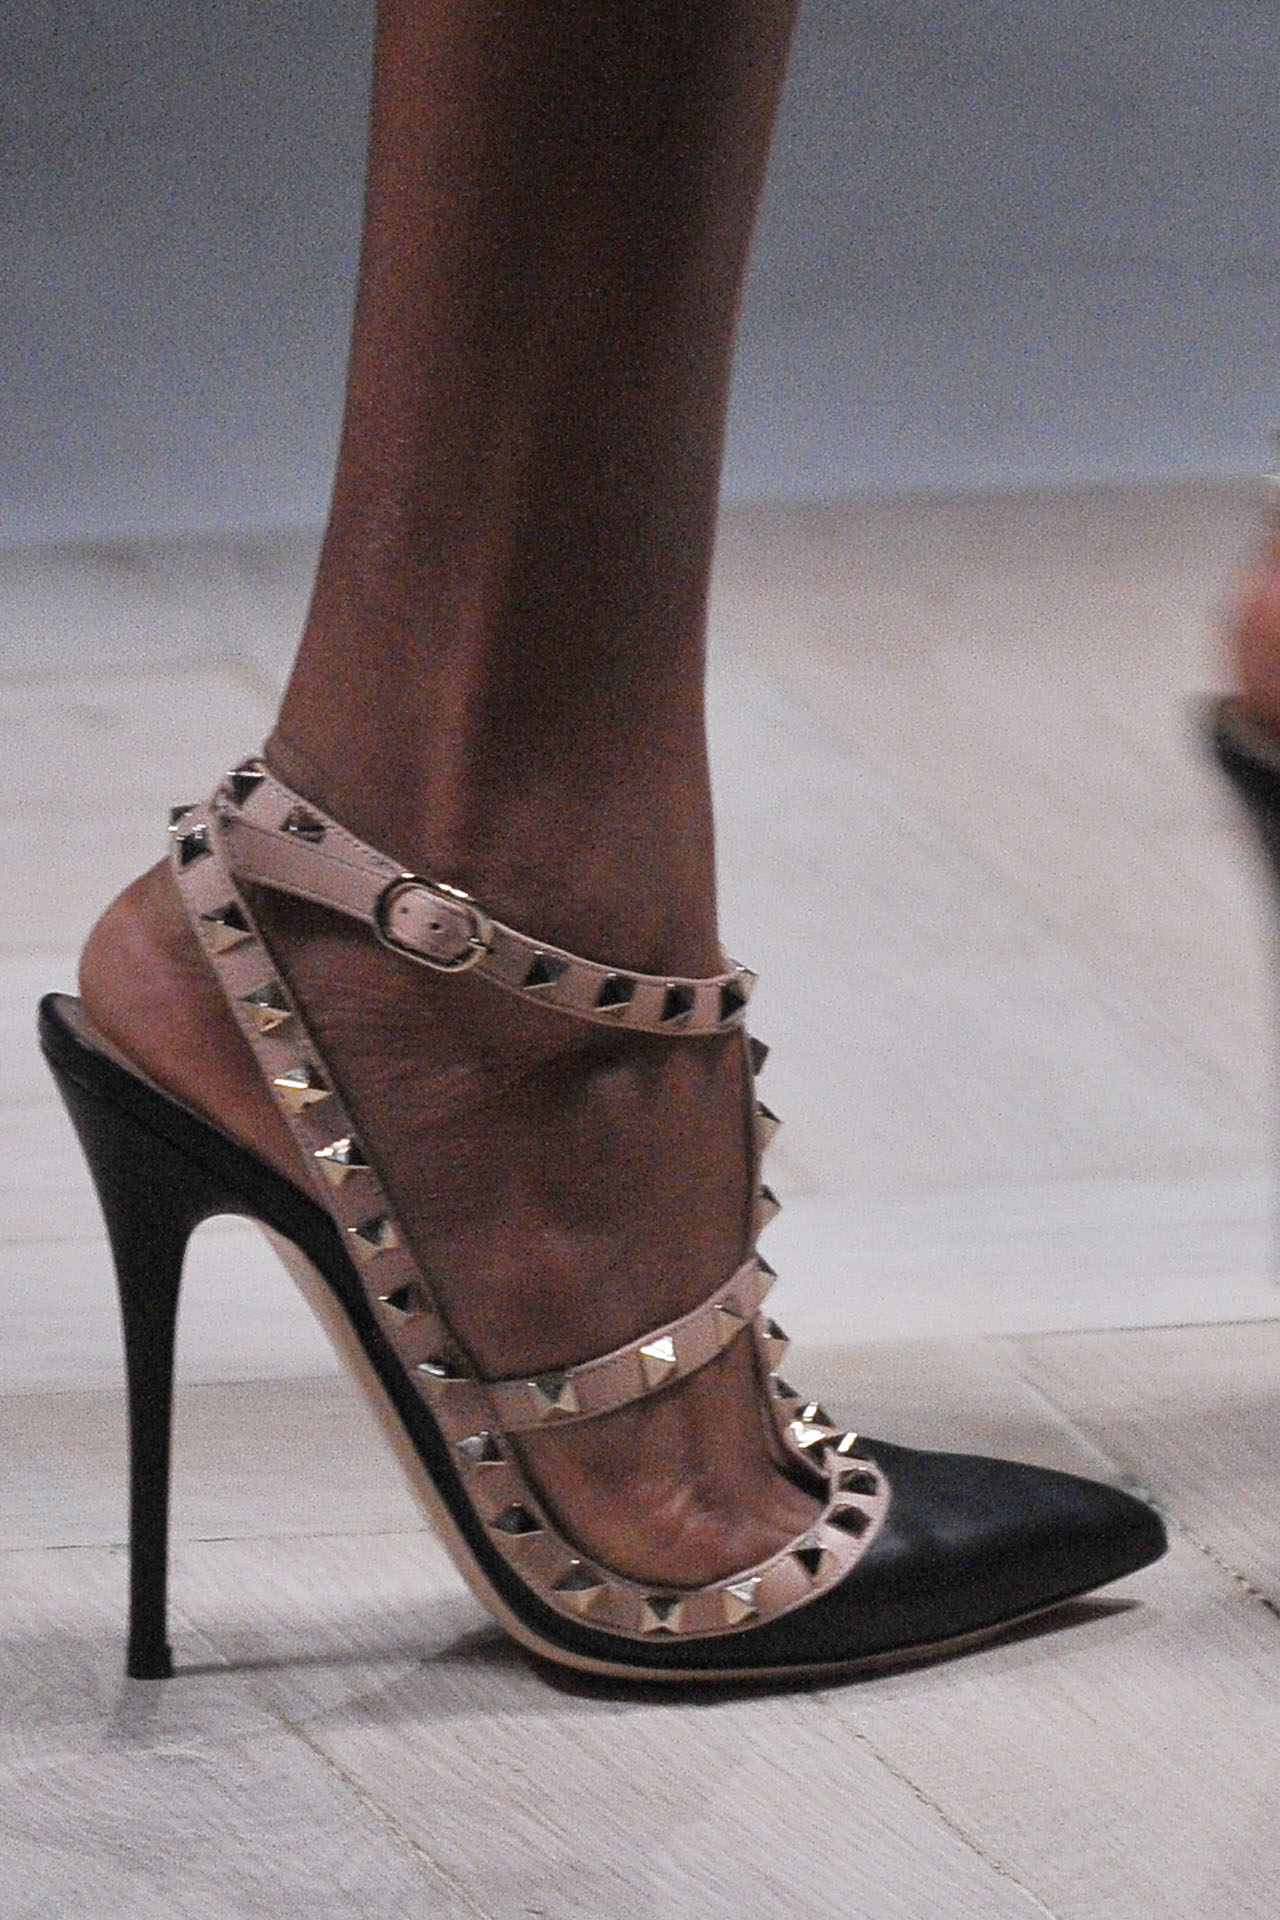 Find great deals on eBay for studded heels. Shop with confidence.